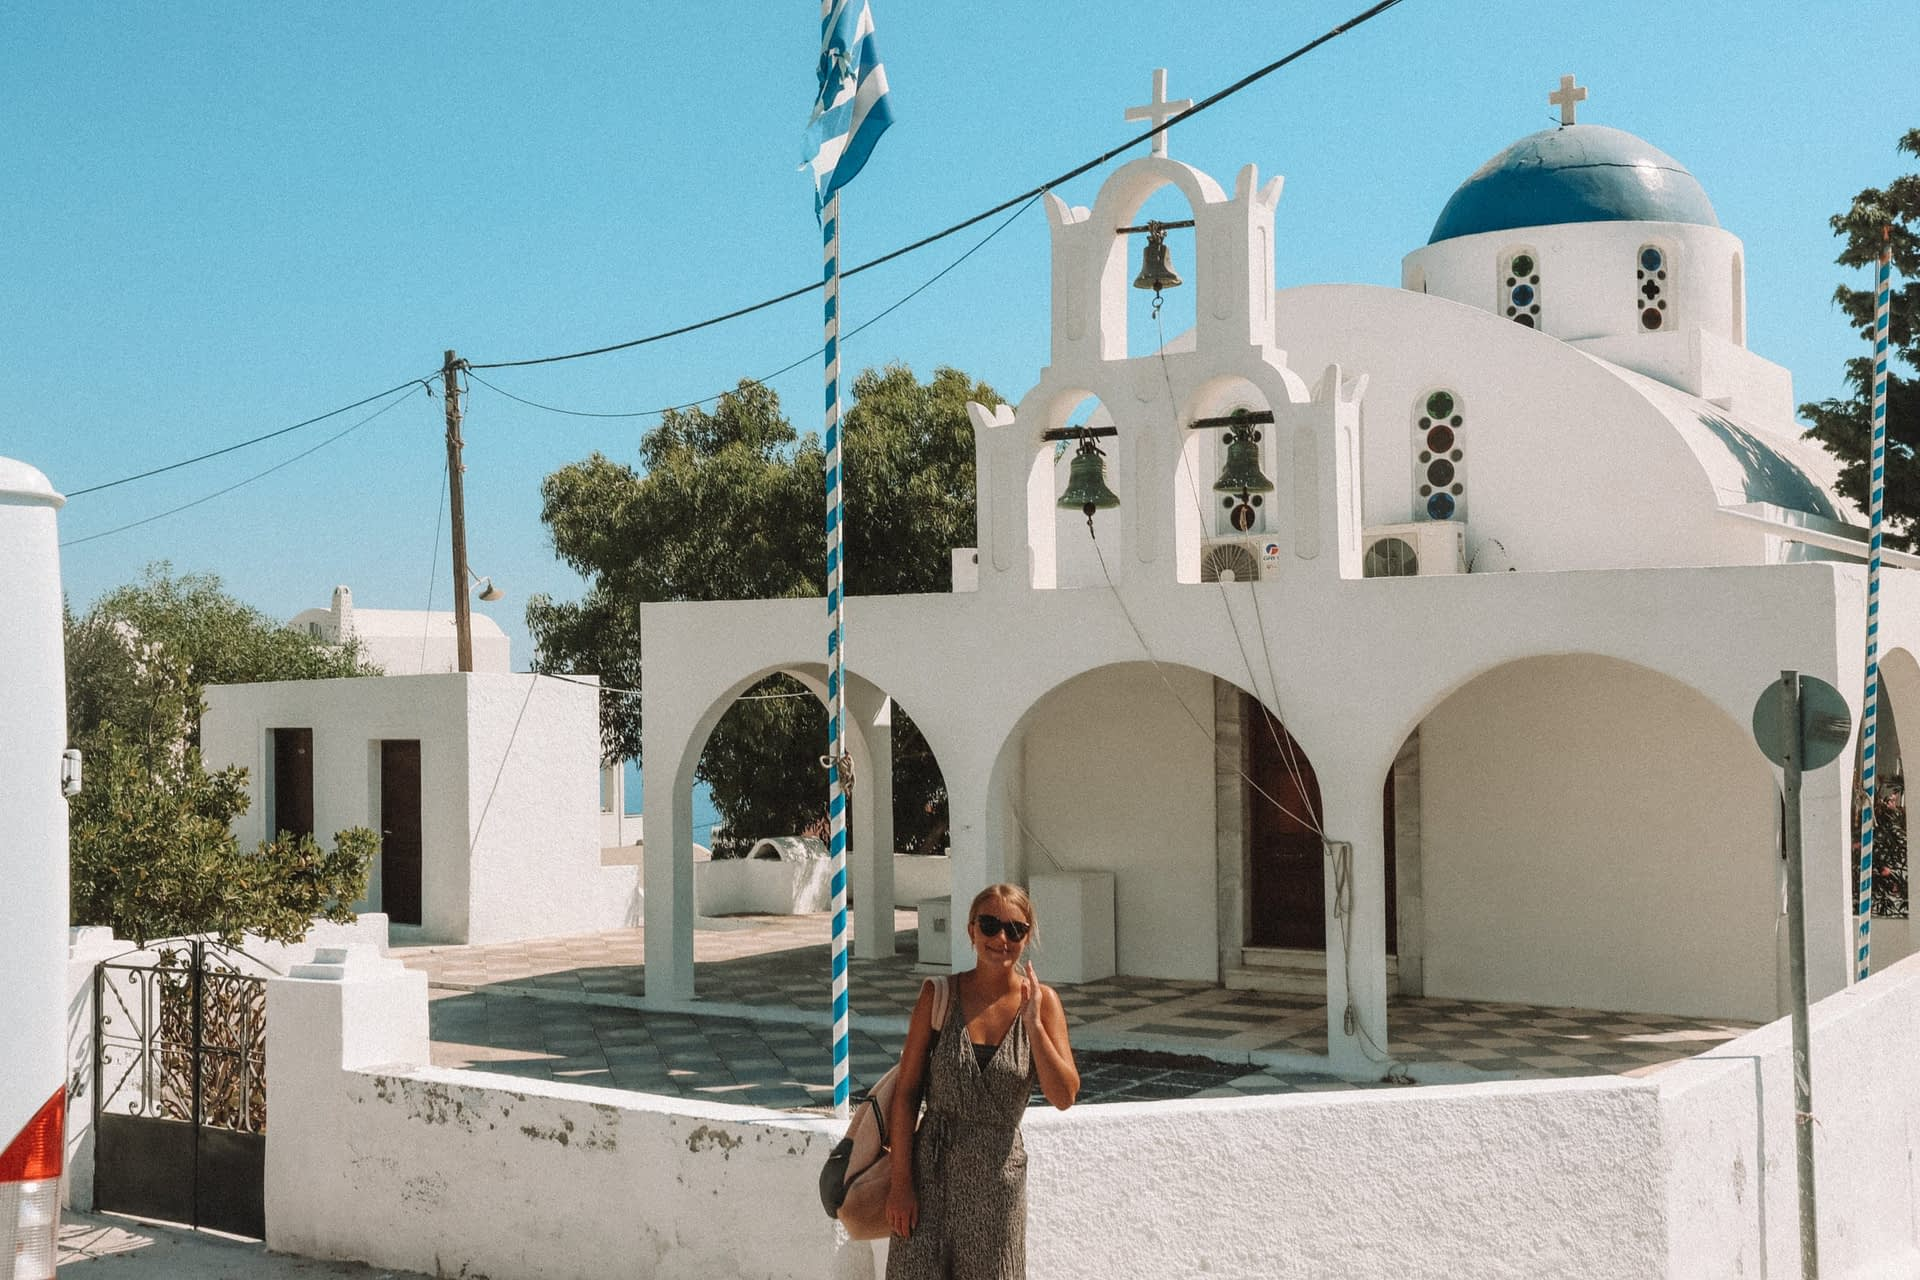 A woman stood in front of a church in Imerovigli